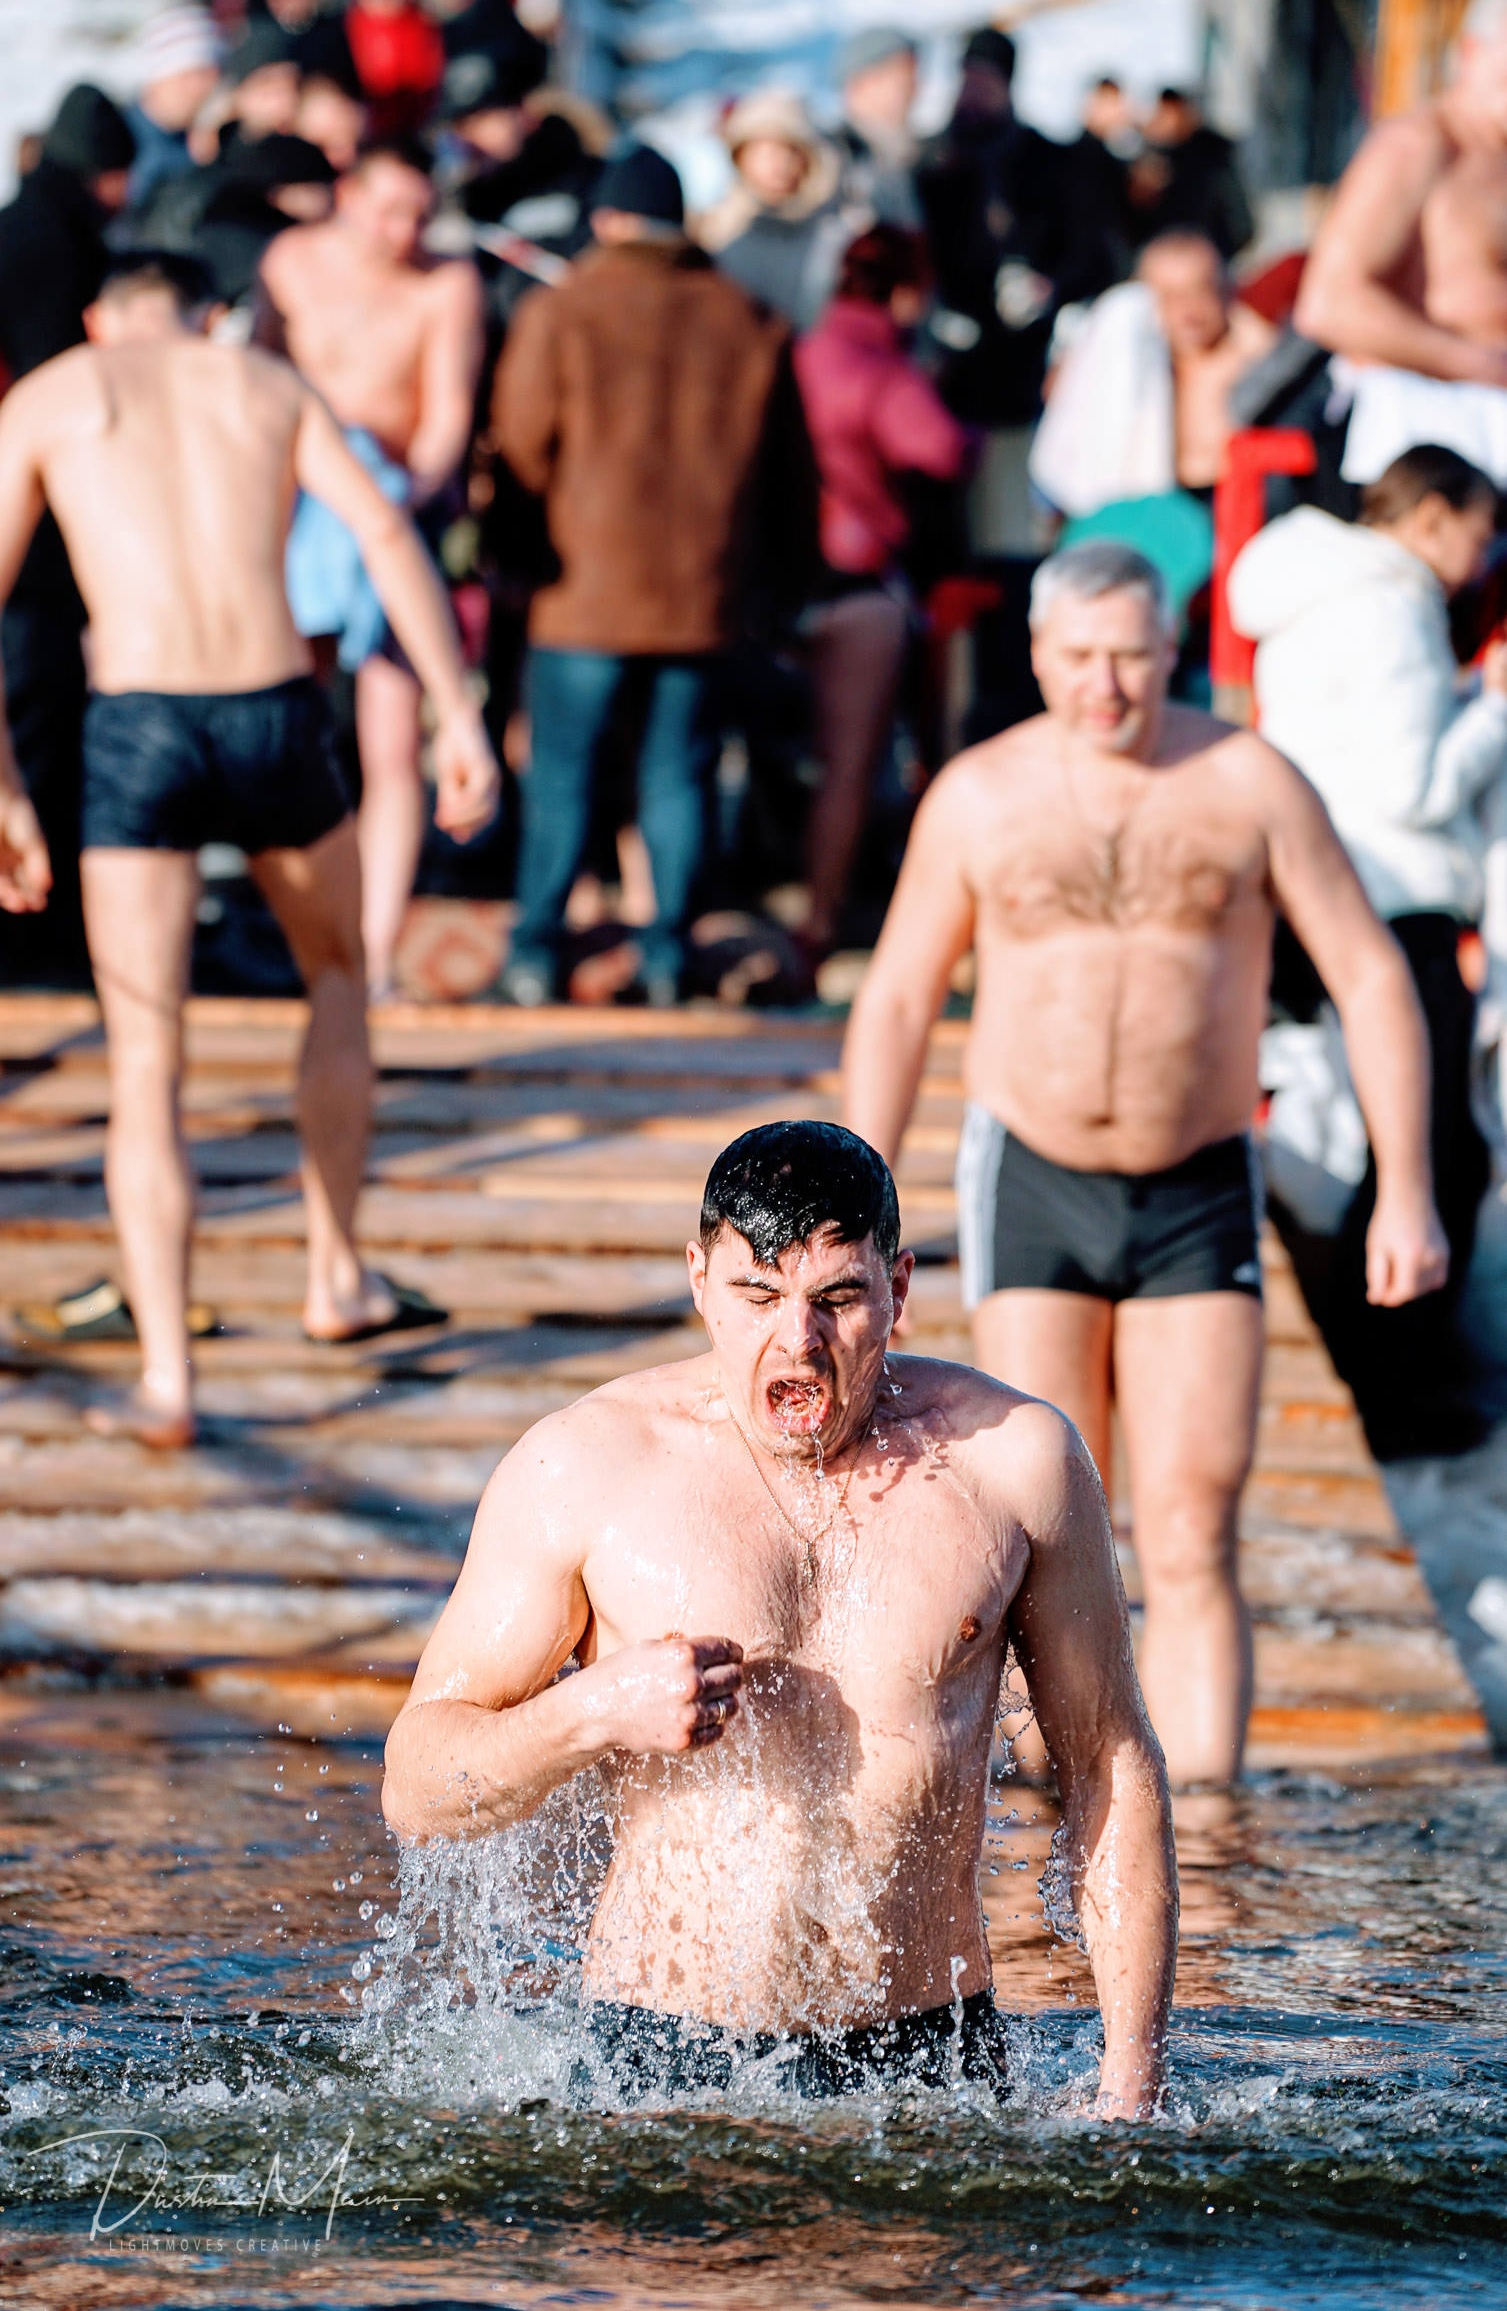 Expressions of a man as he experiences the frozen waters of the Dnieper River during Epiphany. © Dustin Main 2019